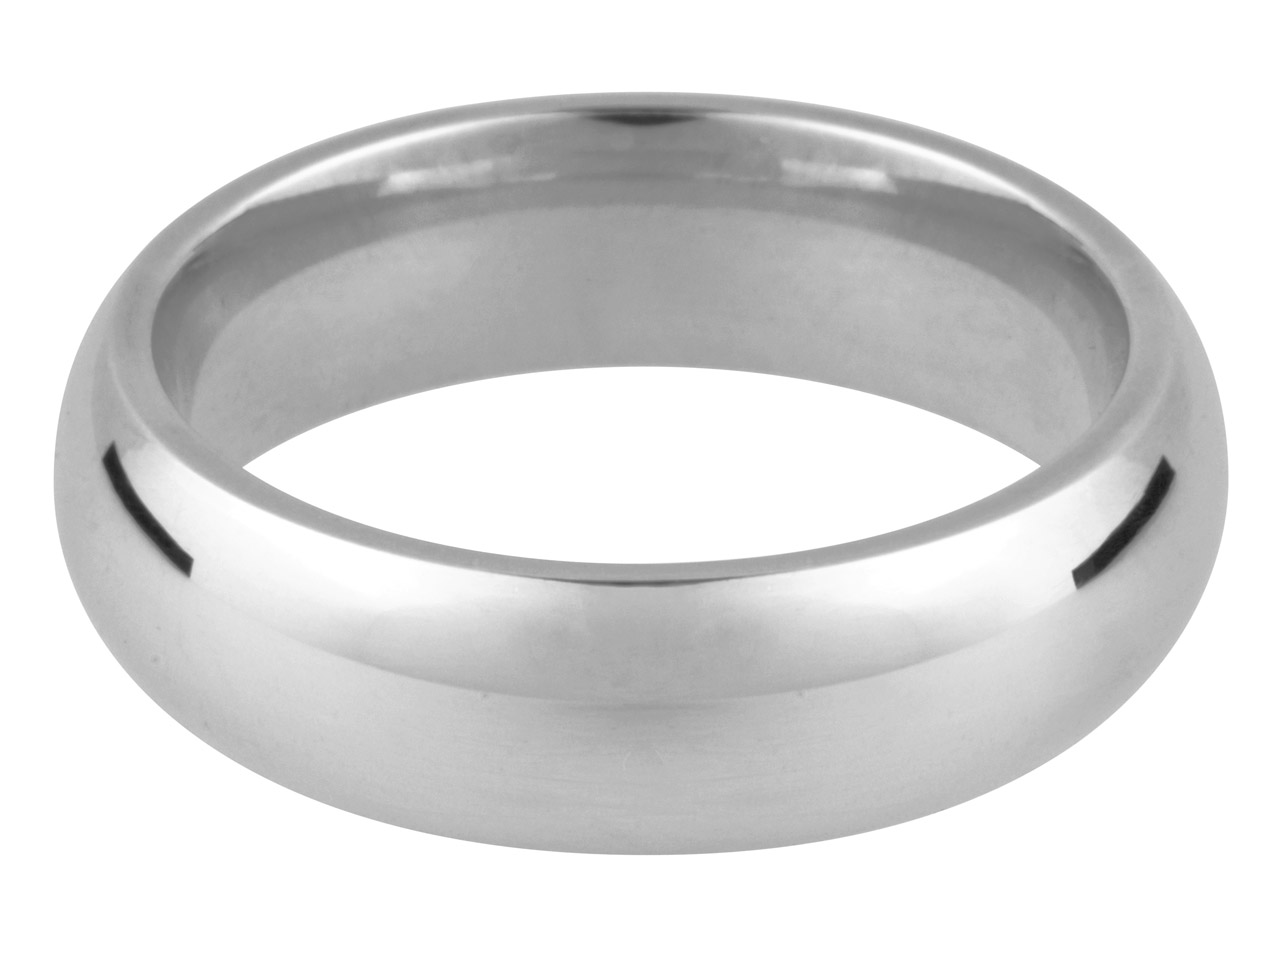 18ct White Court Wedding Ring 5.0mm V 7.5gms Light Weight Hallmarked    Wall Thickness 1.62mm